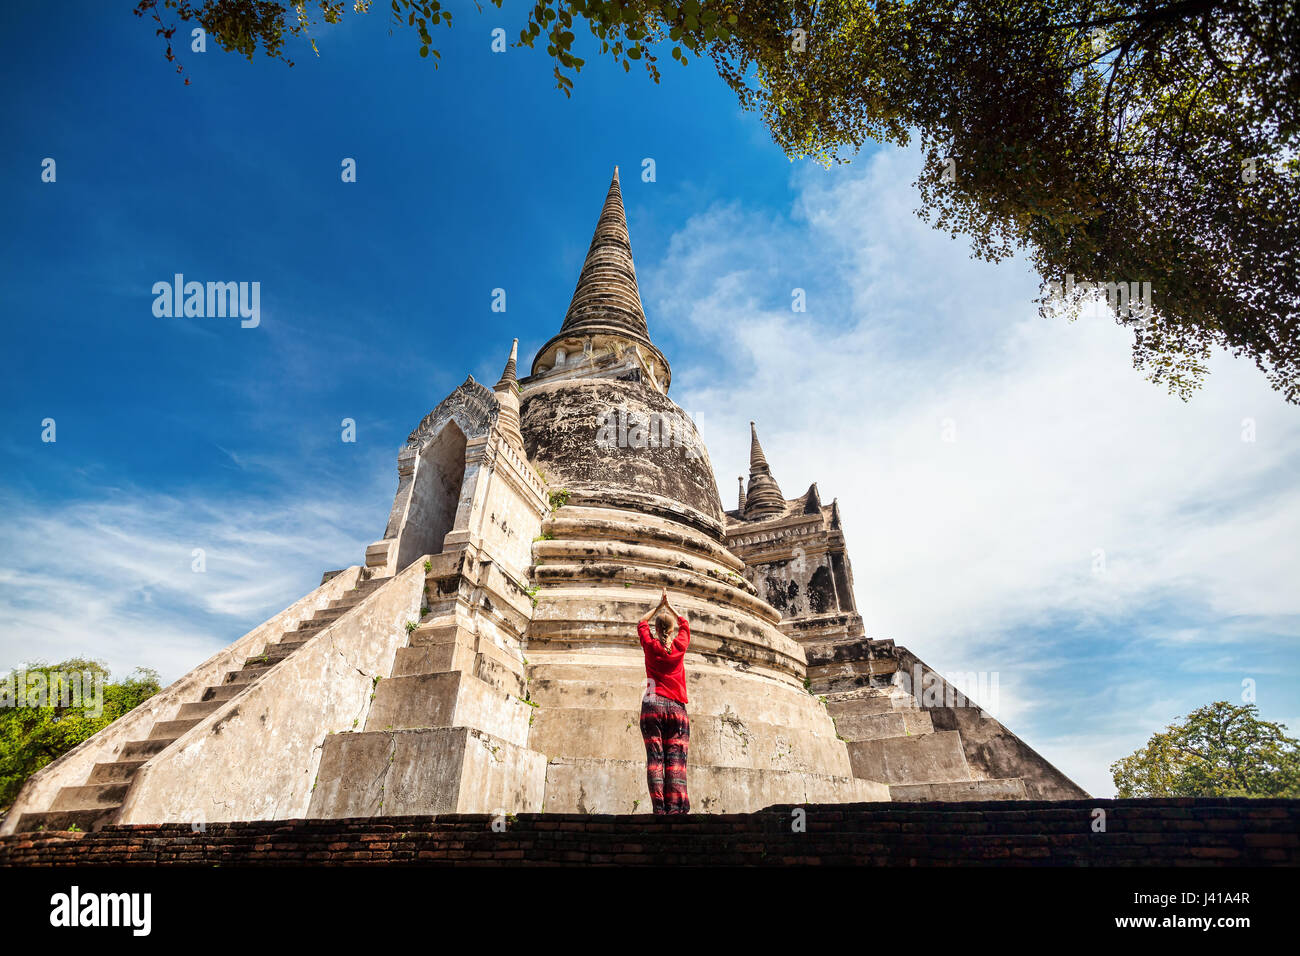 Tourist Woman in red costume praying near ancient ruined stupa in Ayutthaya Historical Park, Thailand - Stock Image